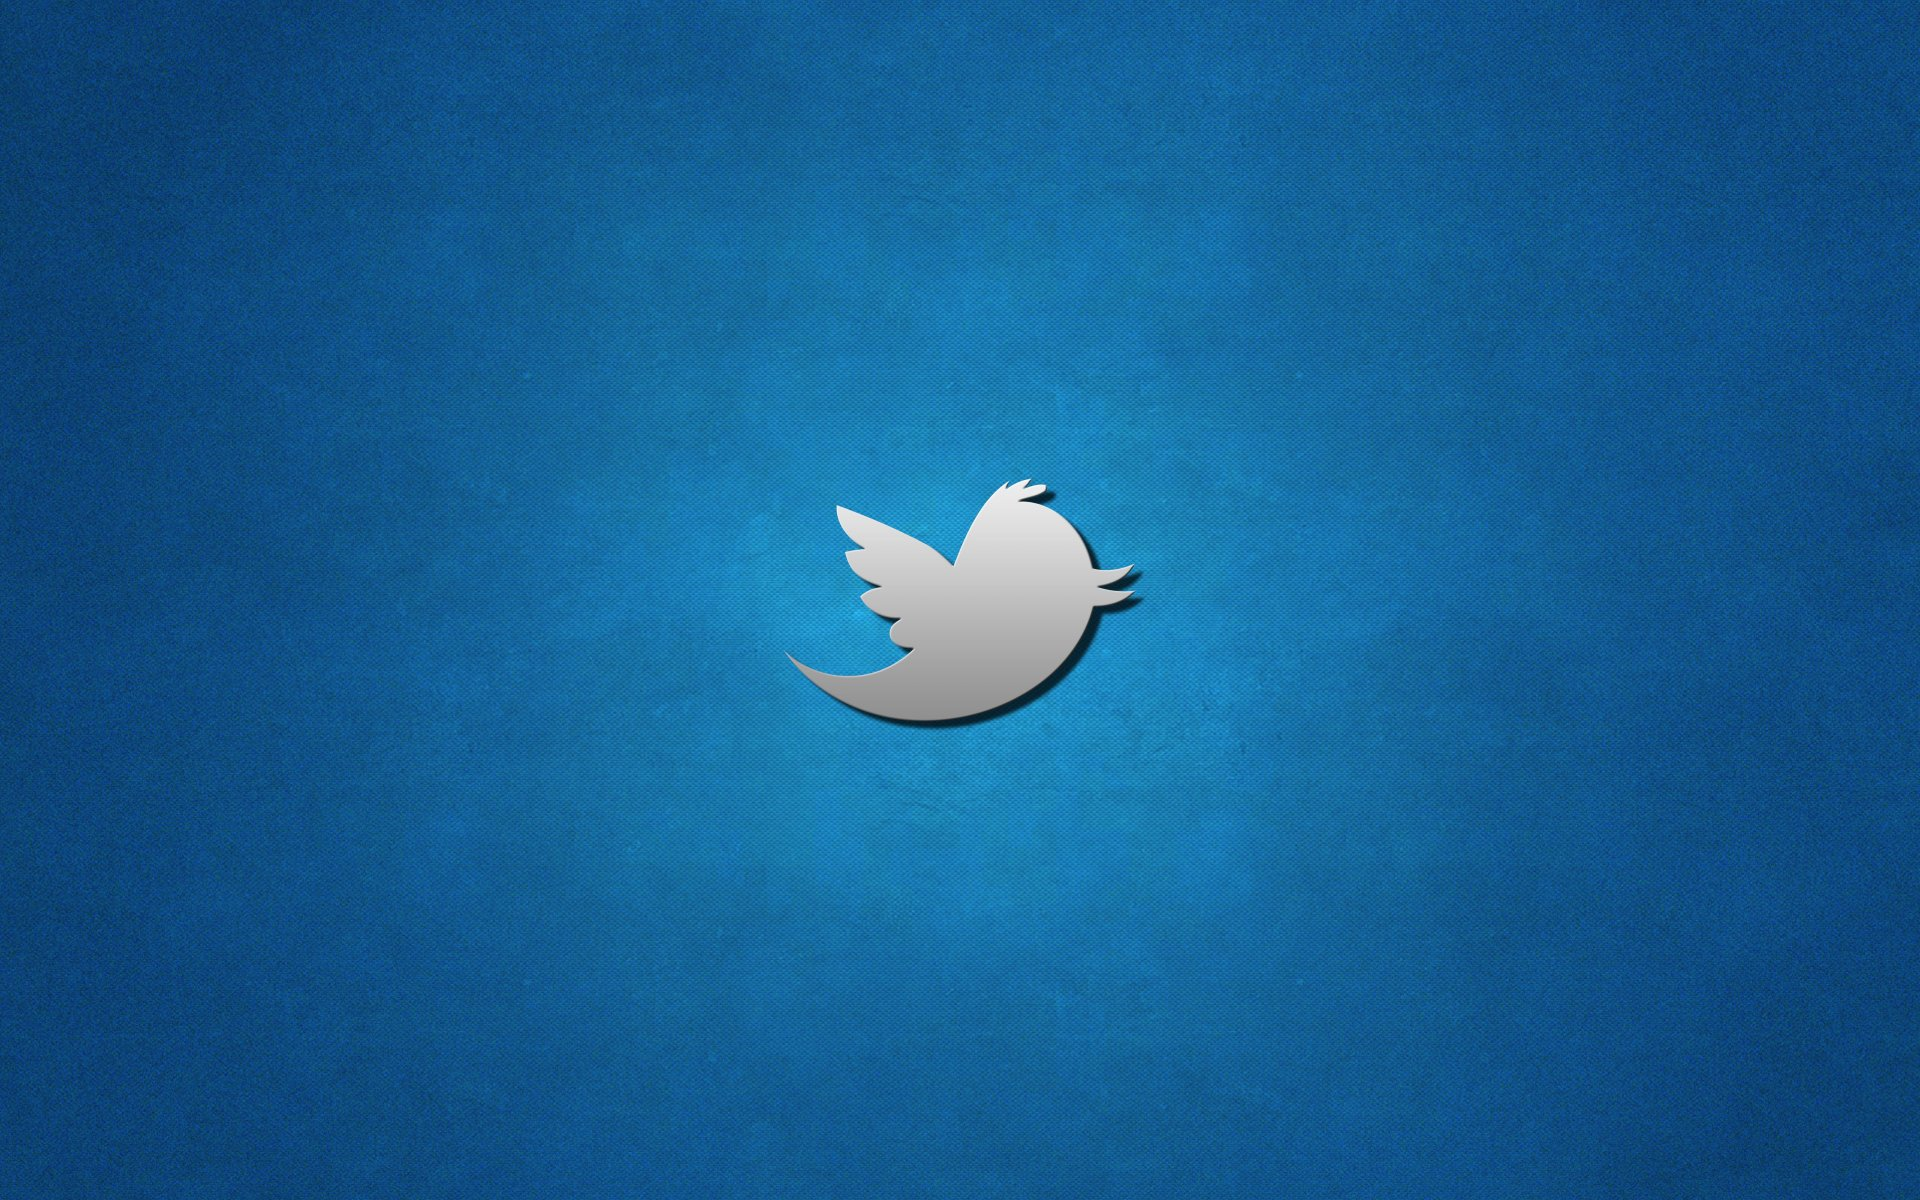 twitter-icon-blue-background-social-media-1920x1200